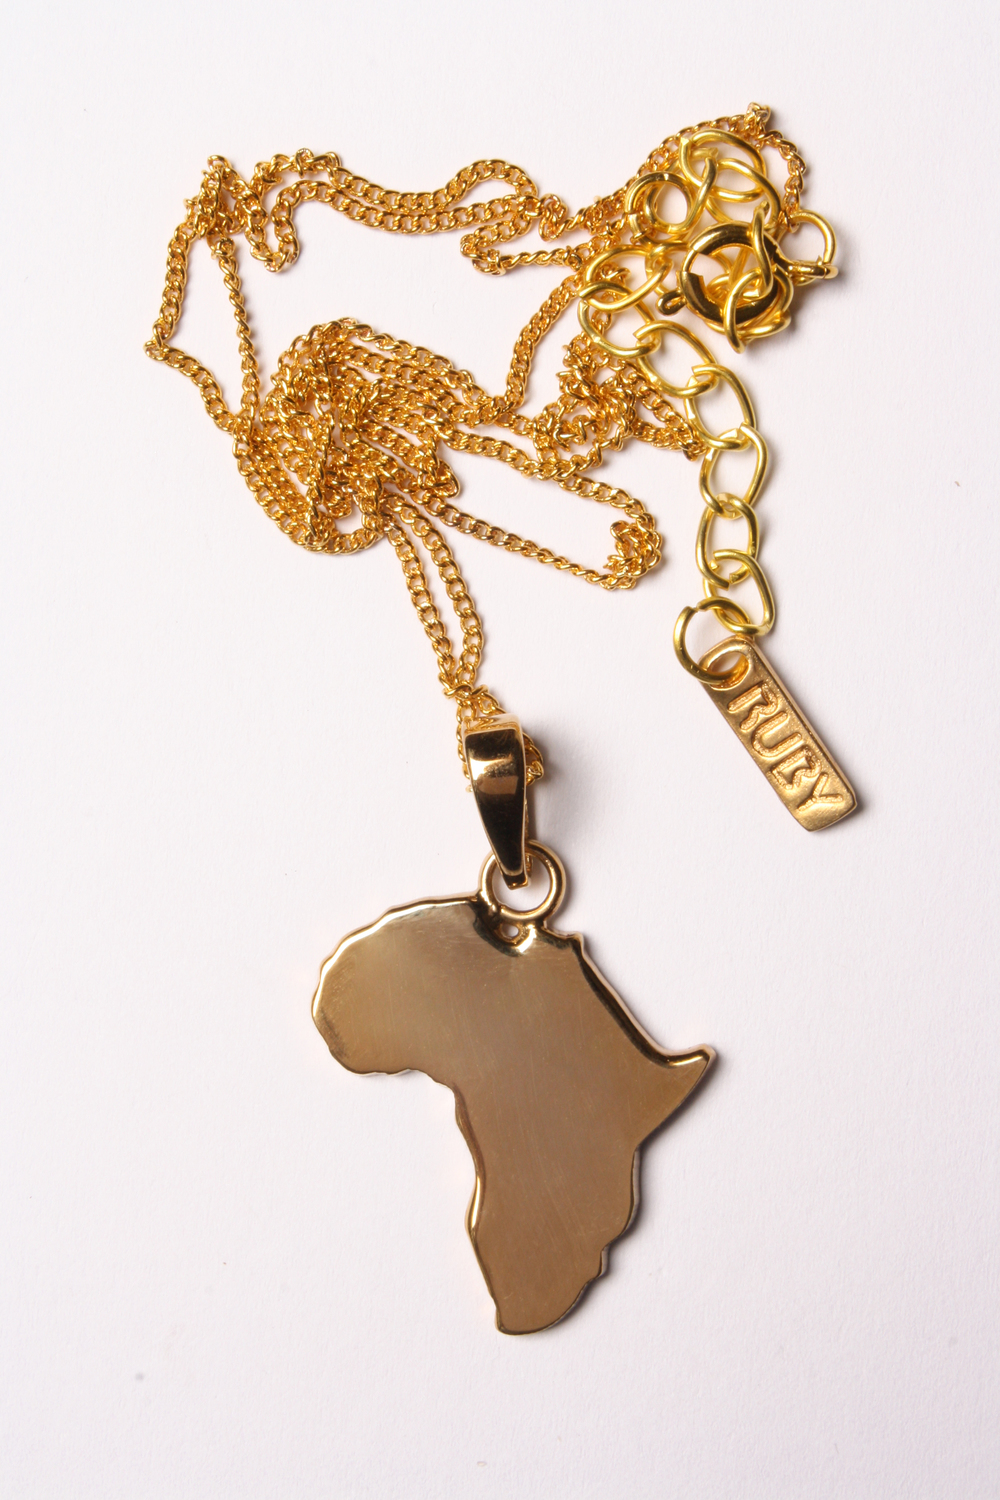 Africa Plain 24k gold plated (2042PL).jpg